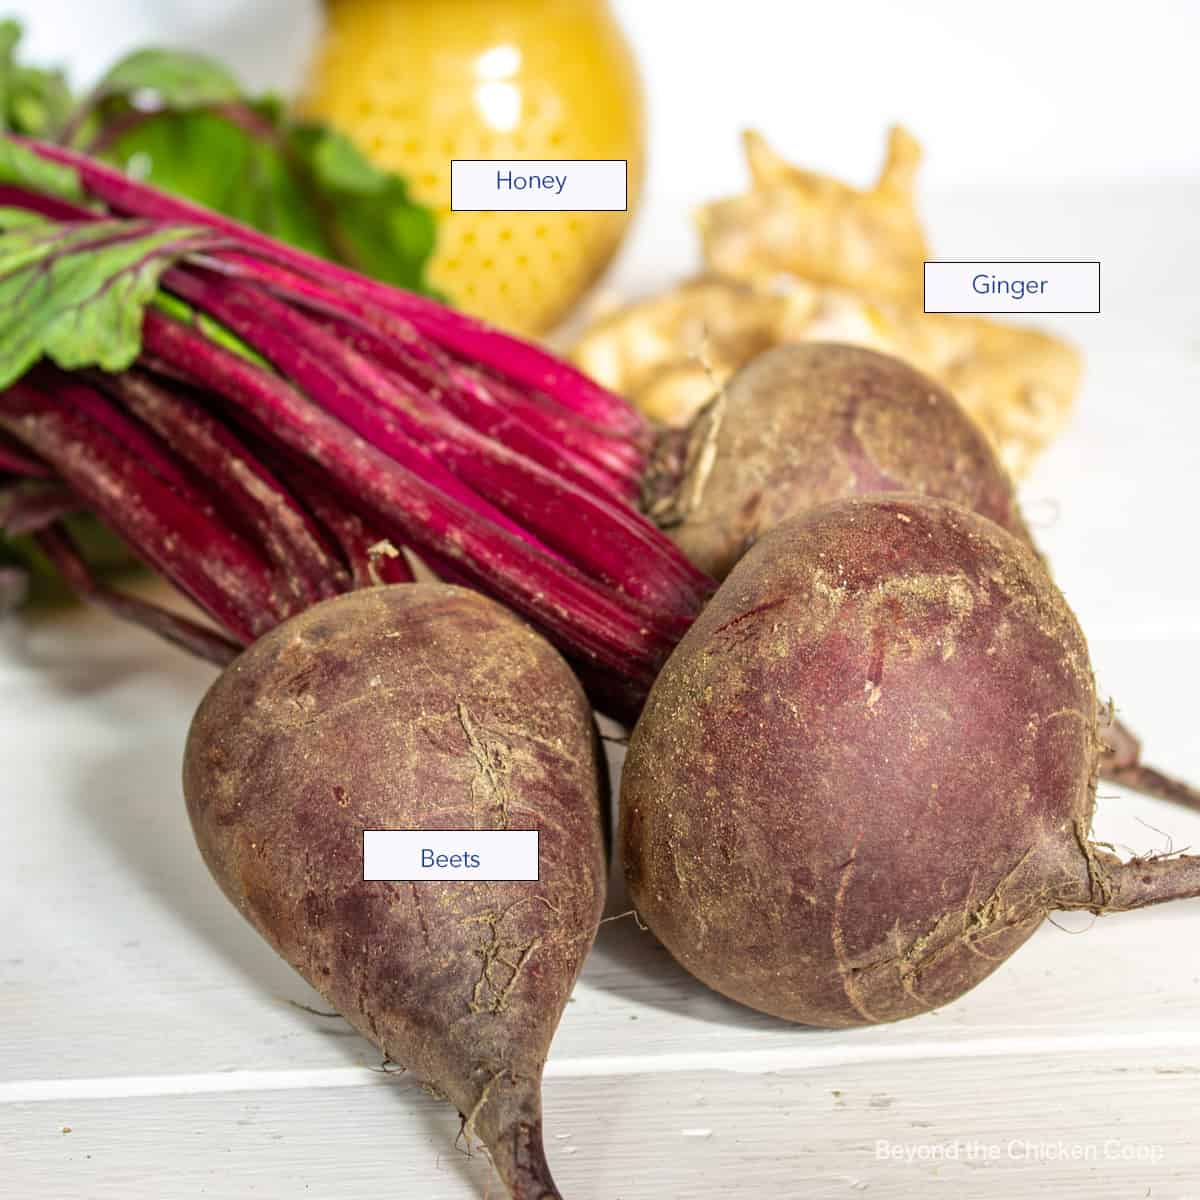 Beets, ginger and honey displayed on a white board.